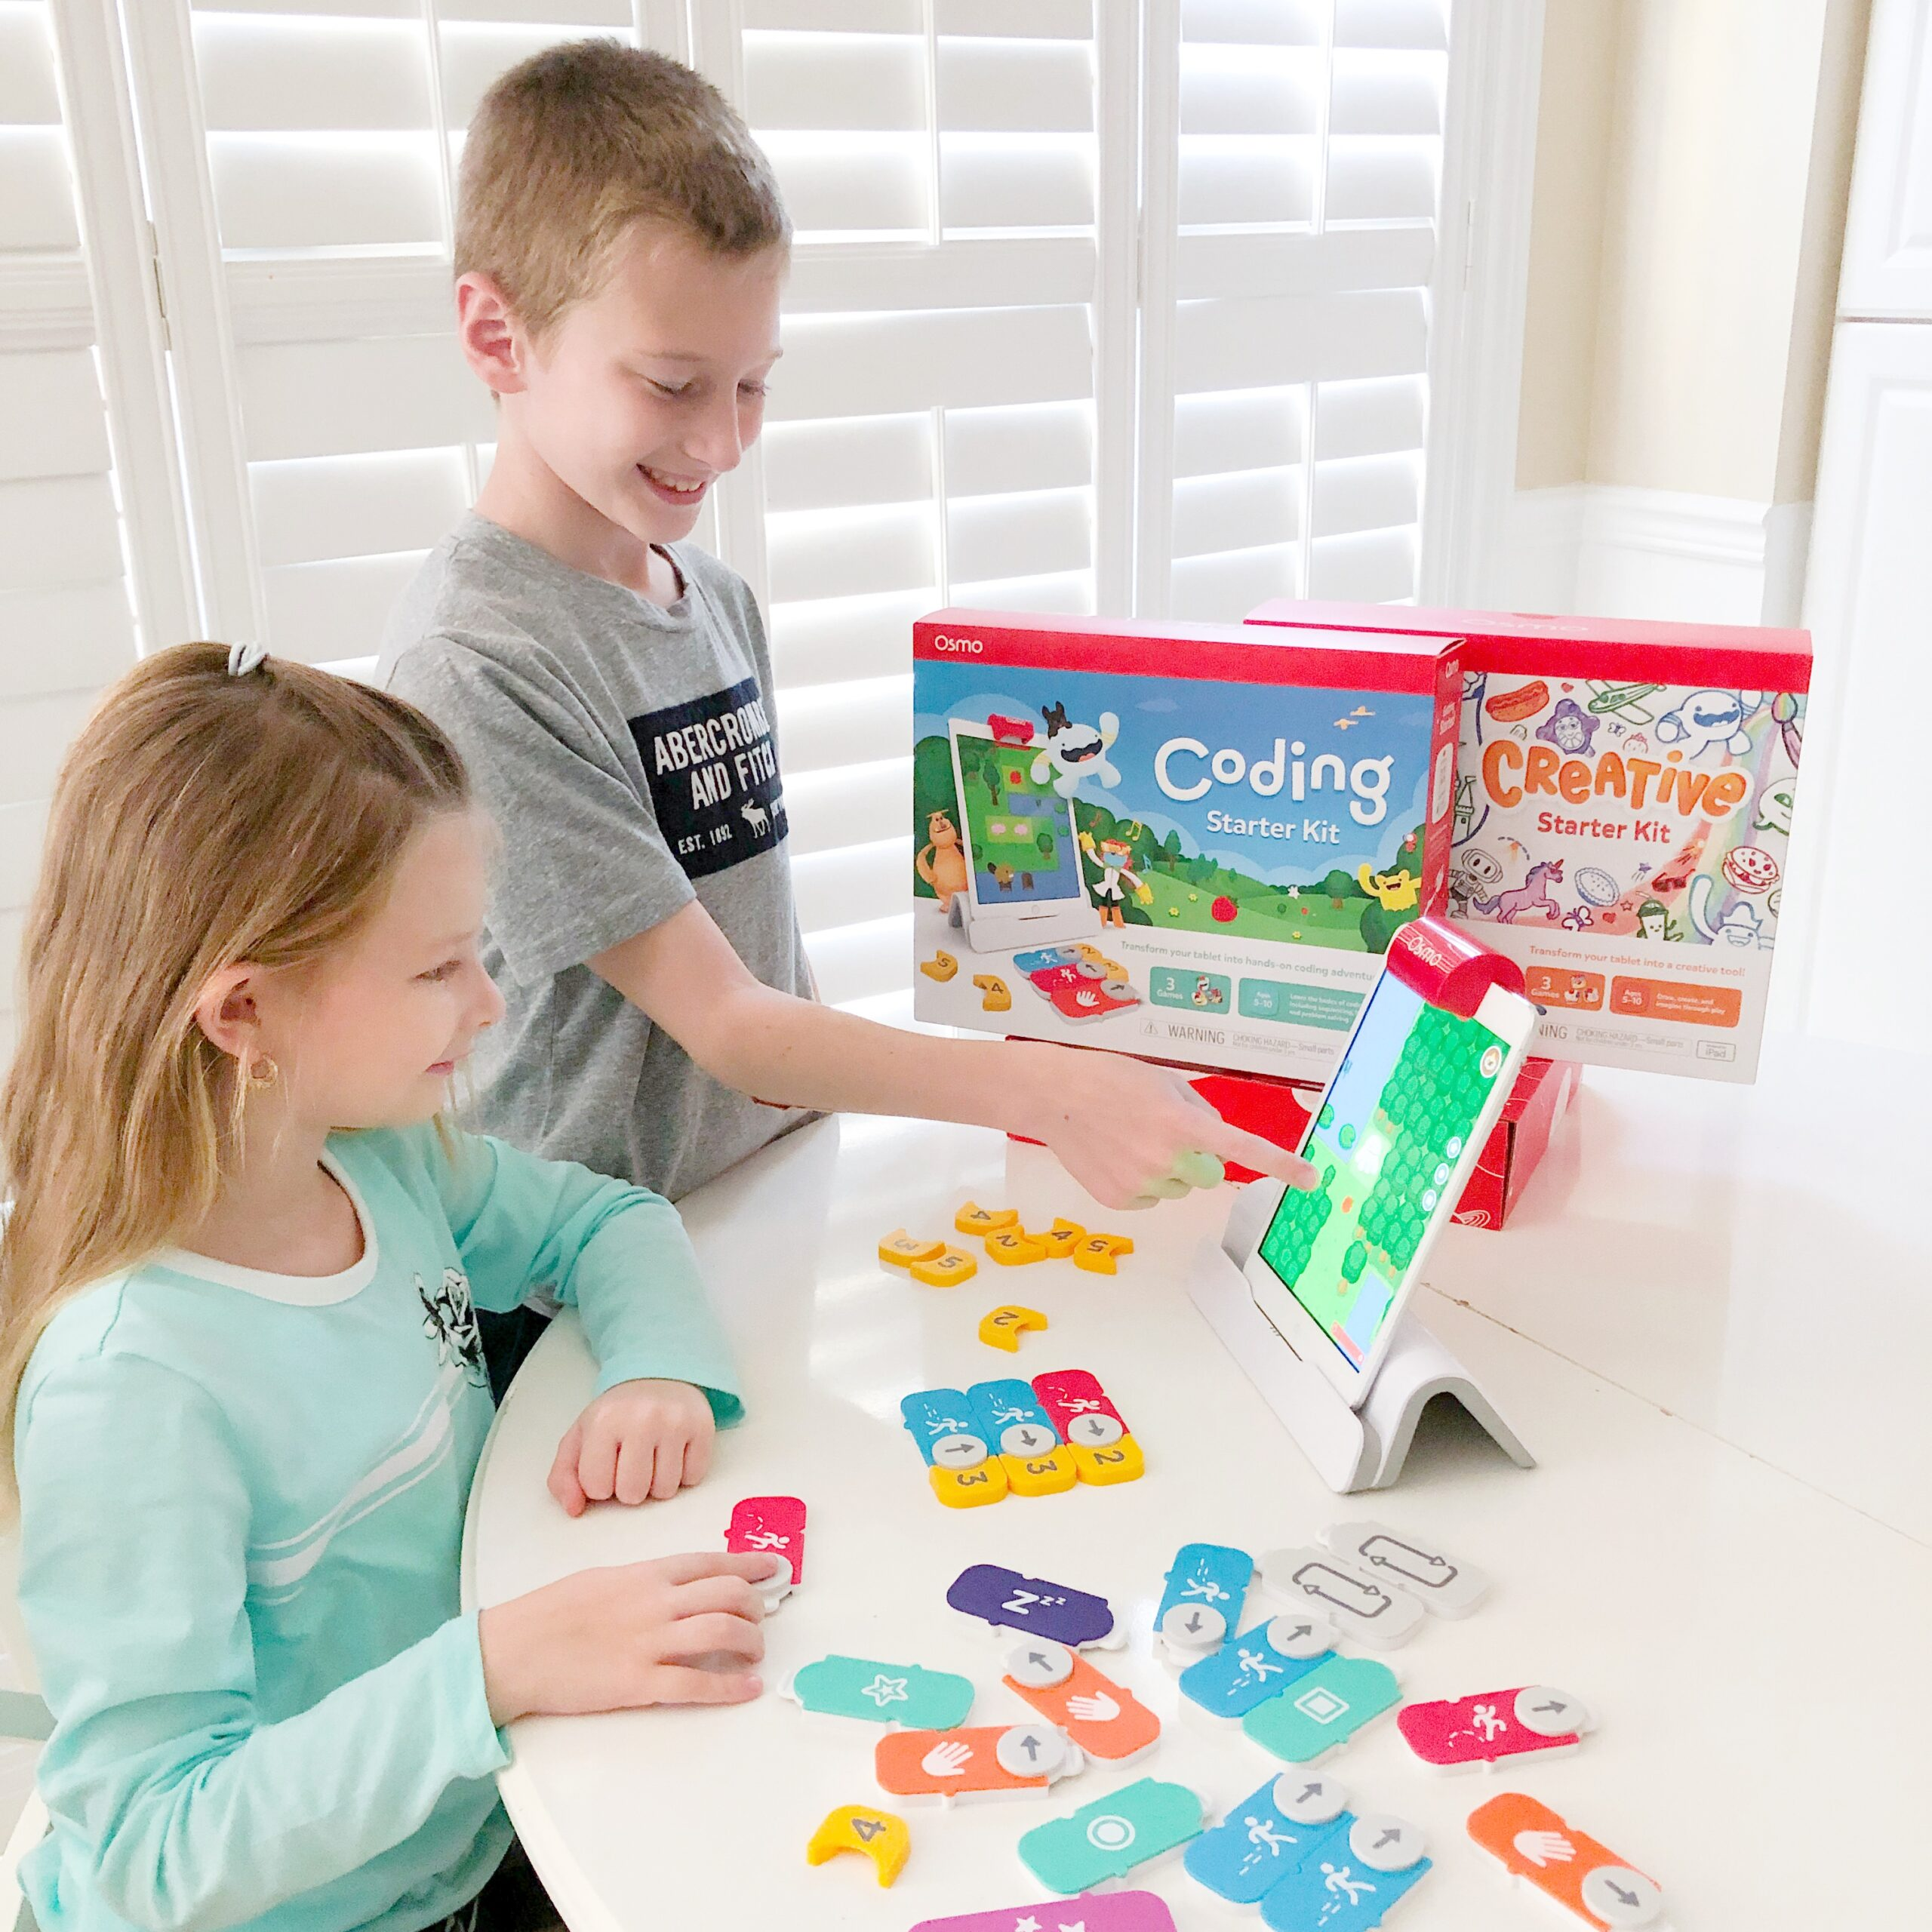 Review on the Osmo Coding Start Kit, and the Monster Creative Kit on Livin' Life with Style